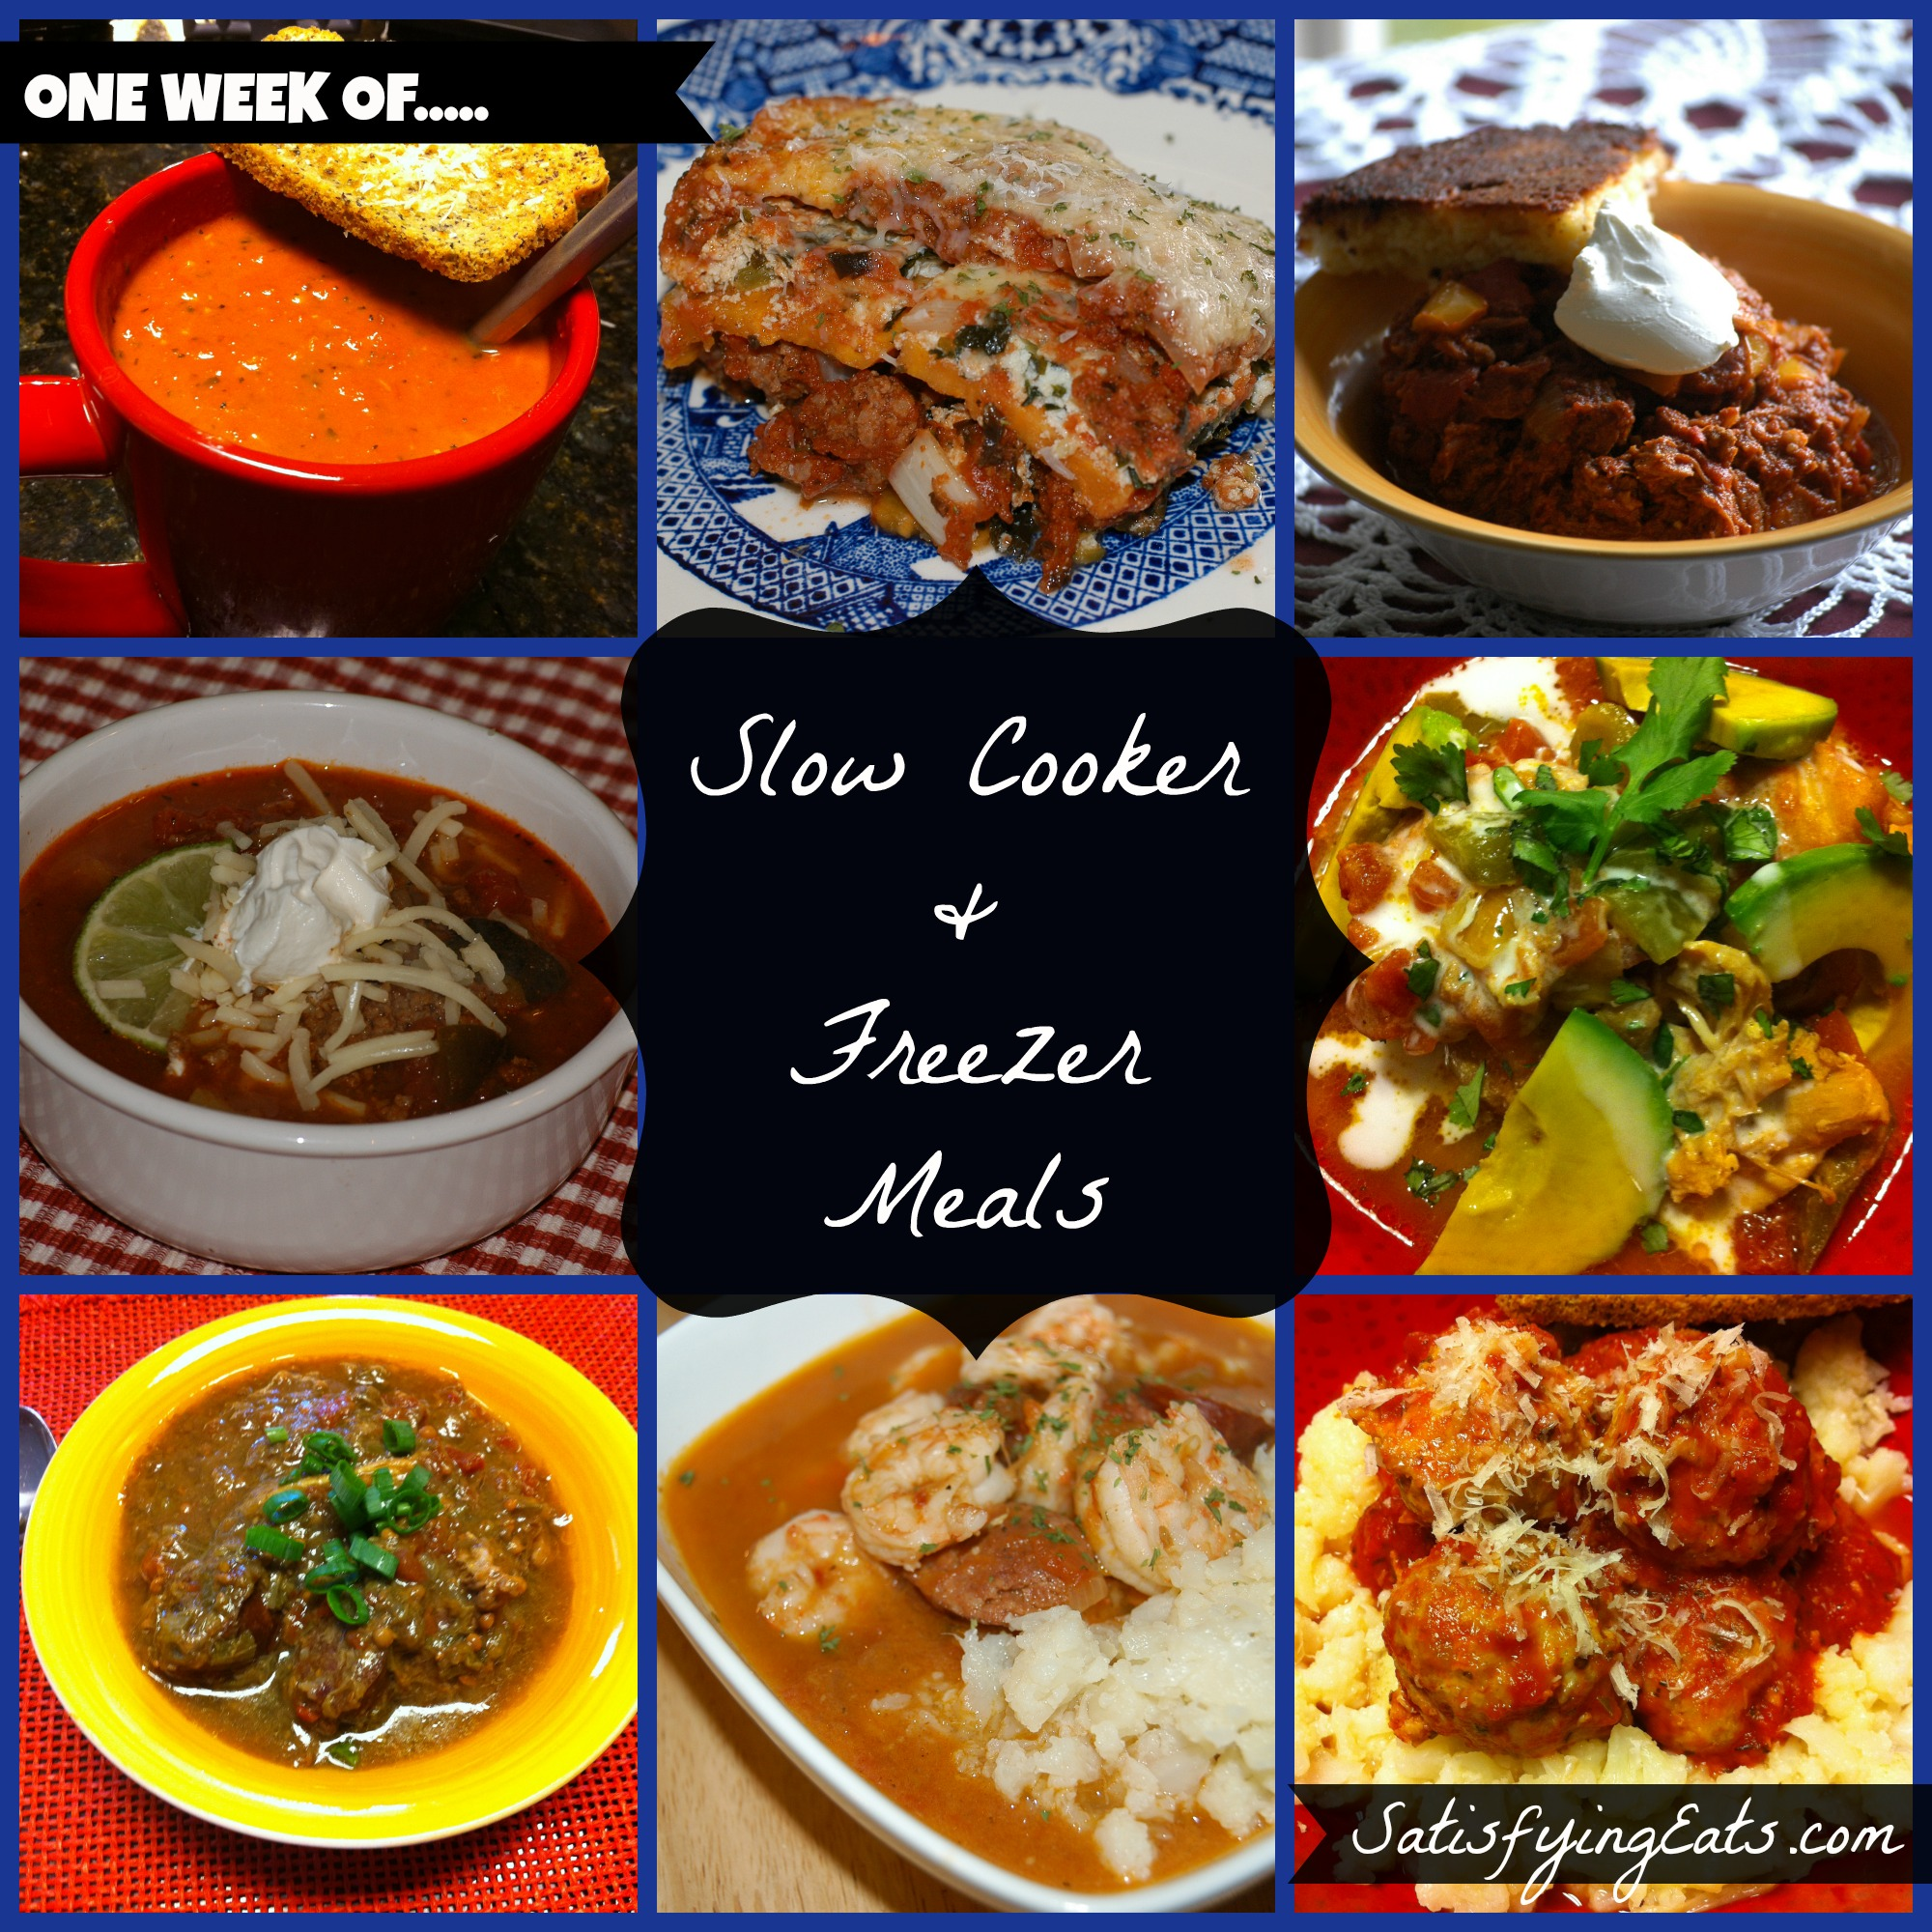 40 Fall Slow Cooker Recipes: 40 Slow Cooker & Freezer Meals